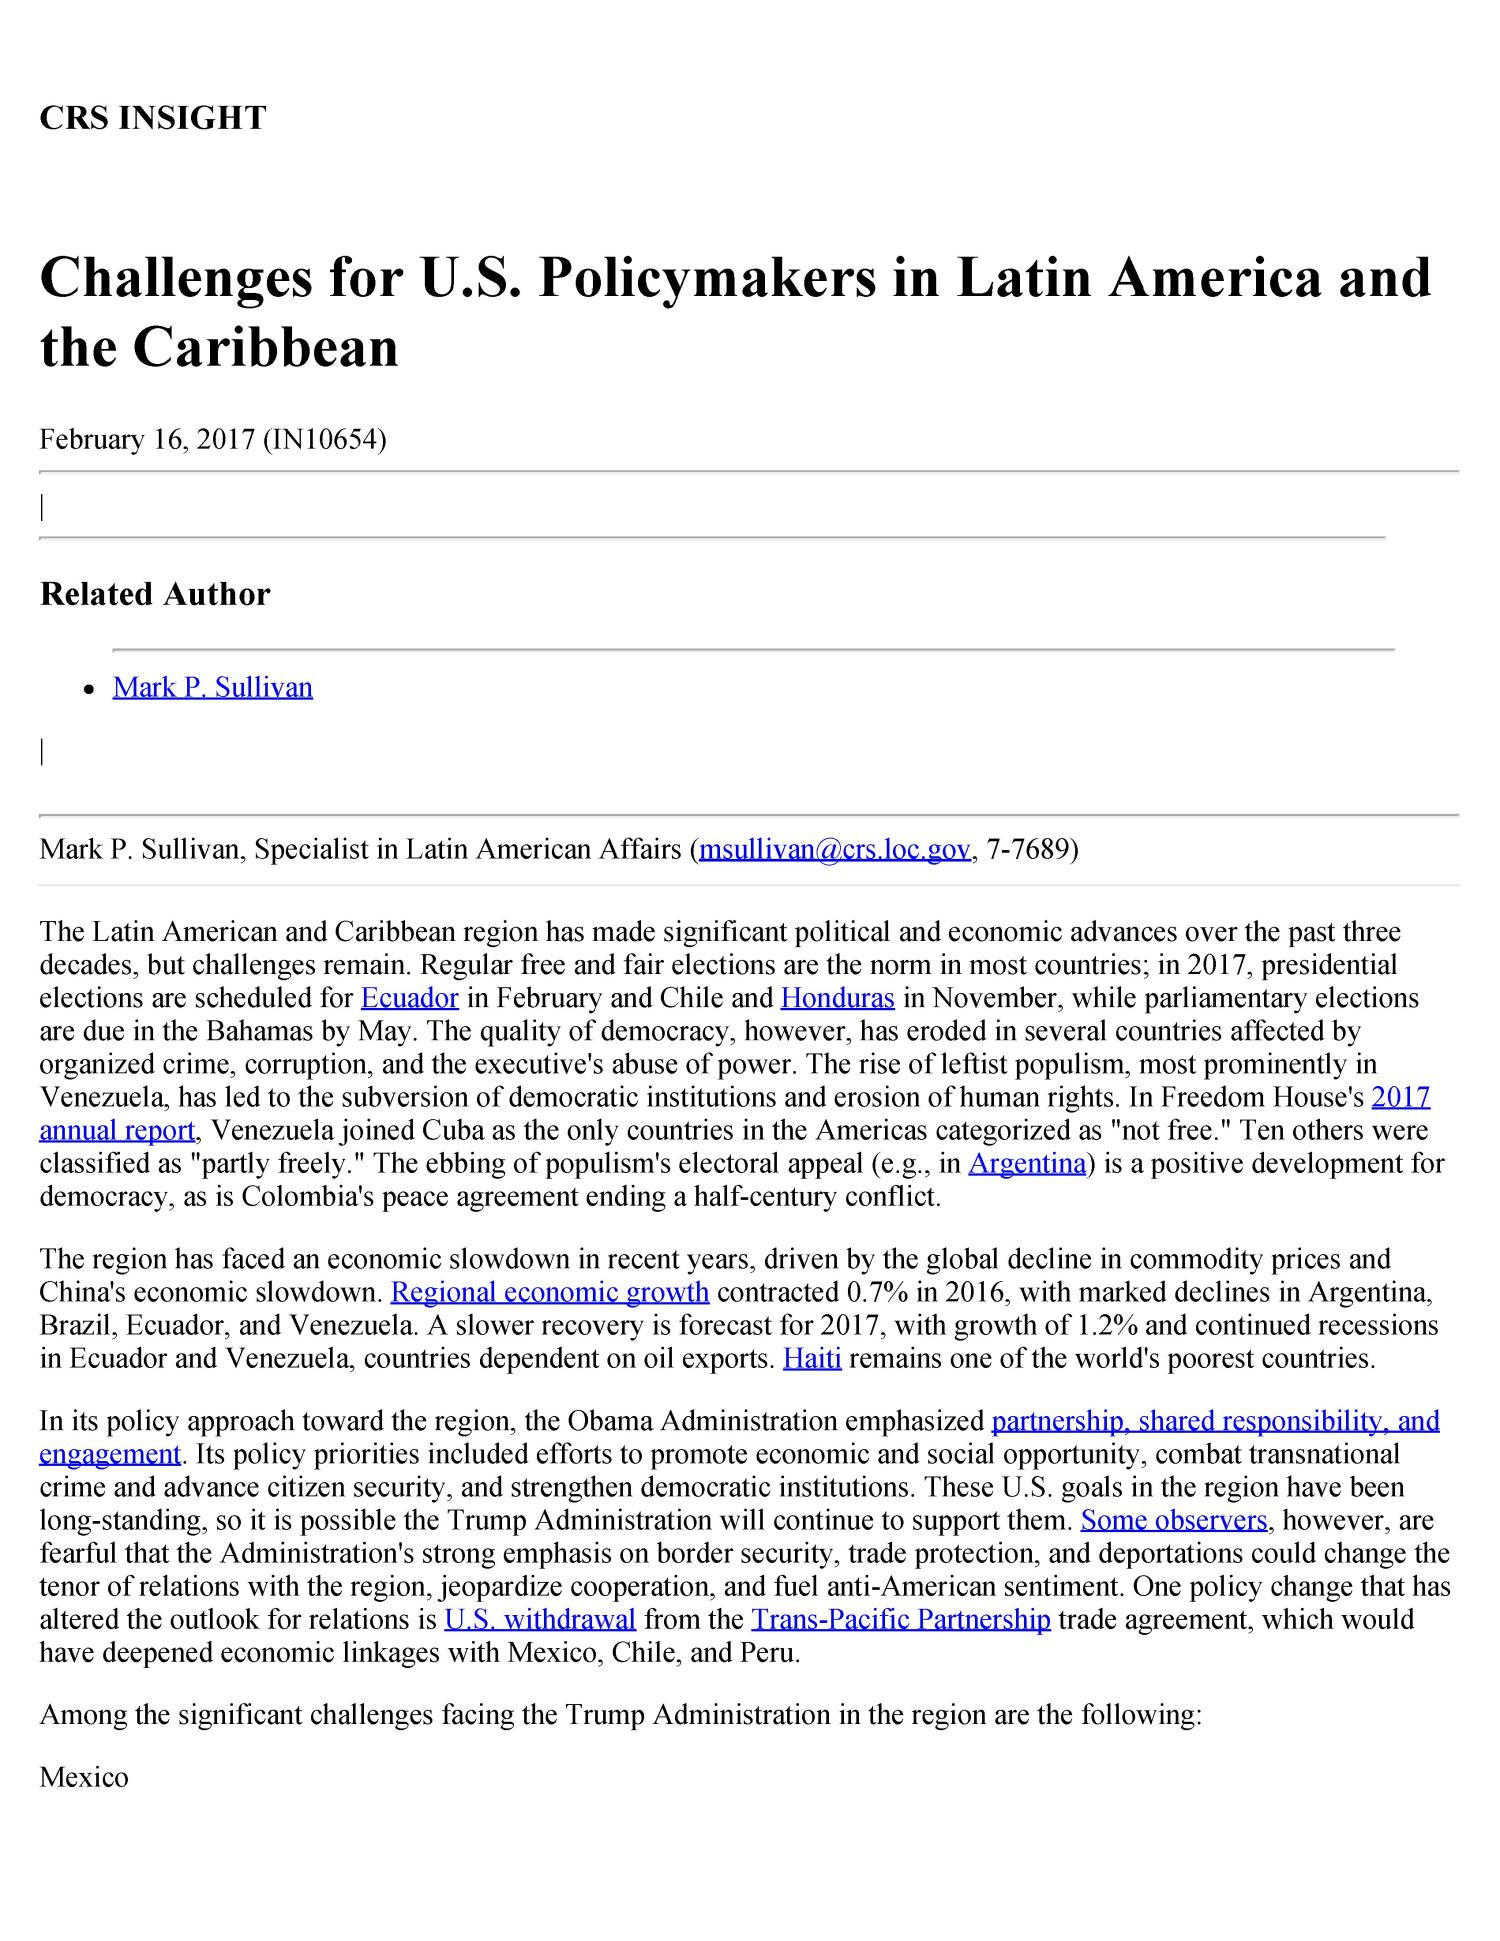 Challenges For US Policymakers In Latin America And The - Poorest caribbean countries